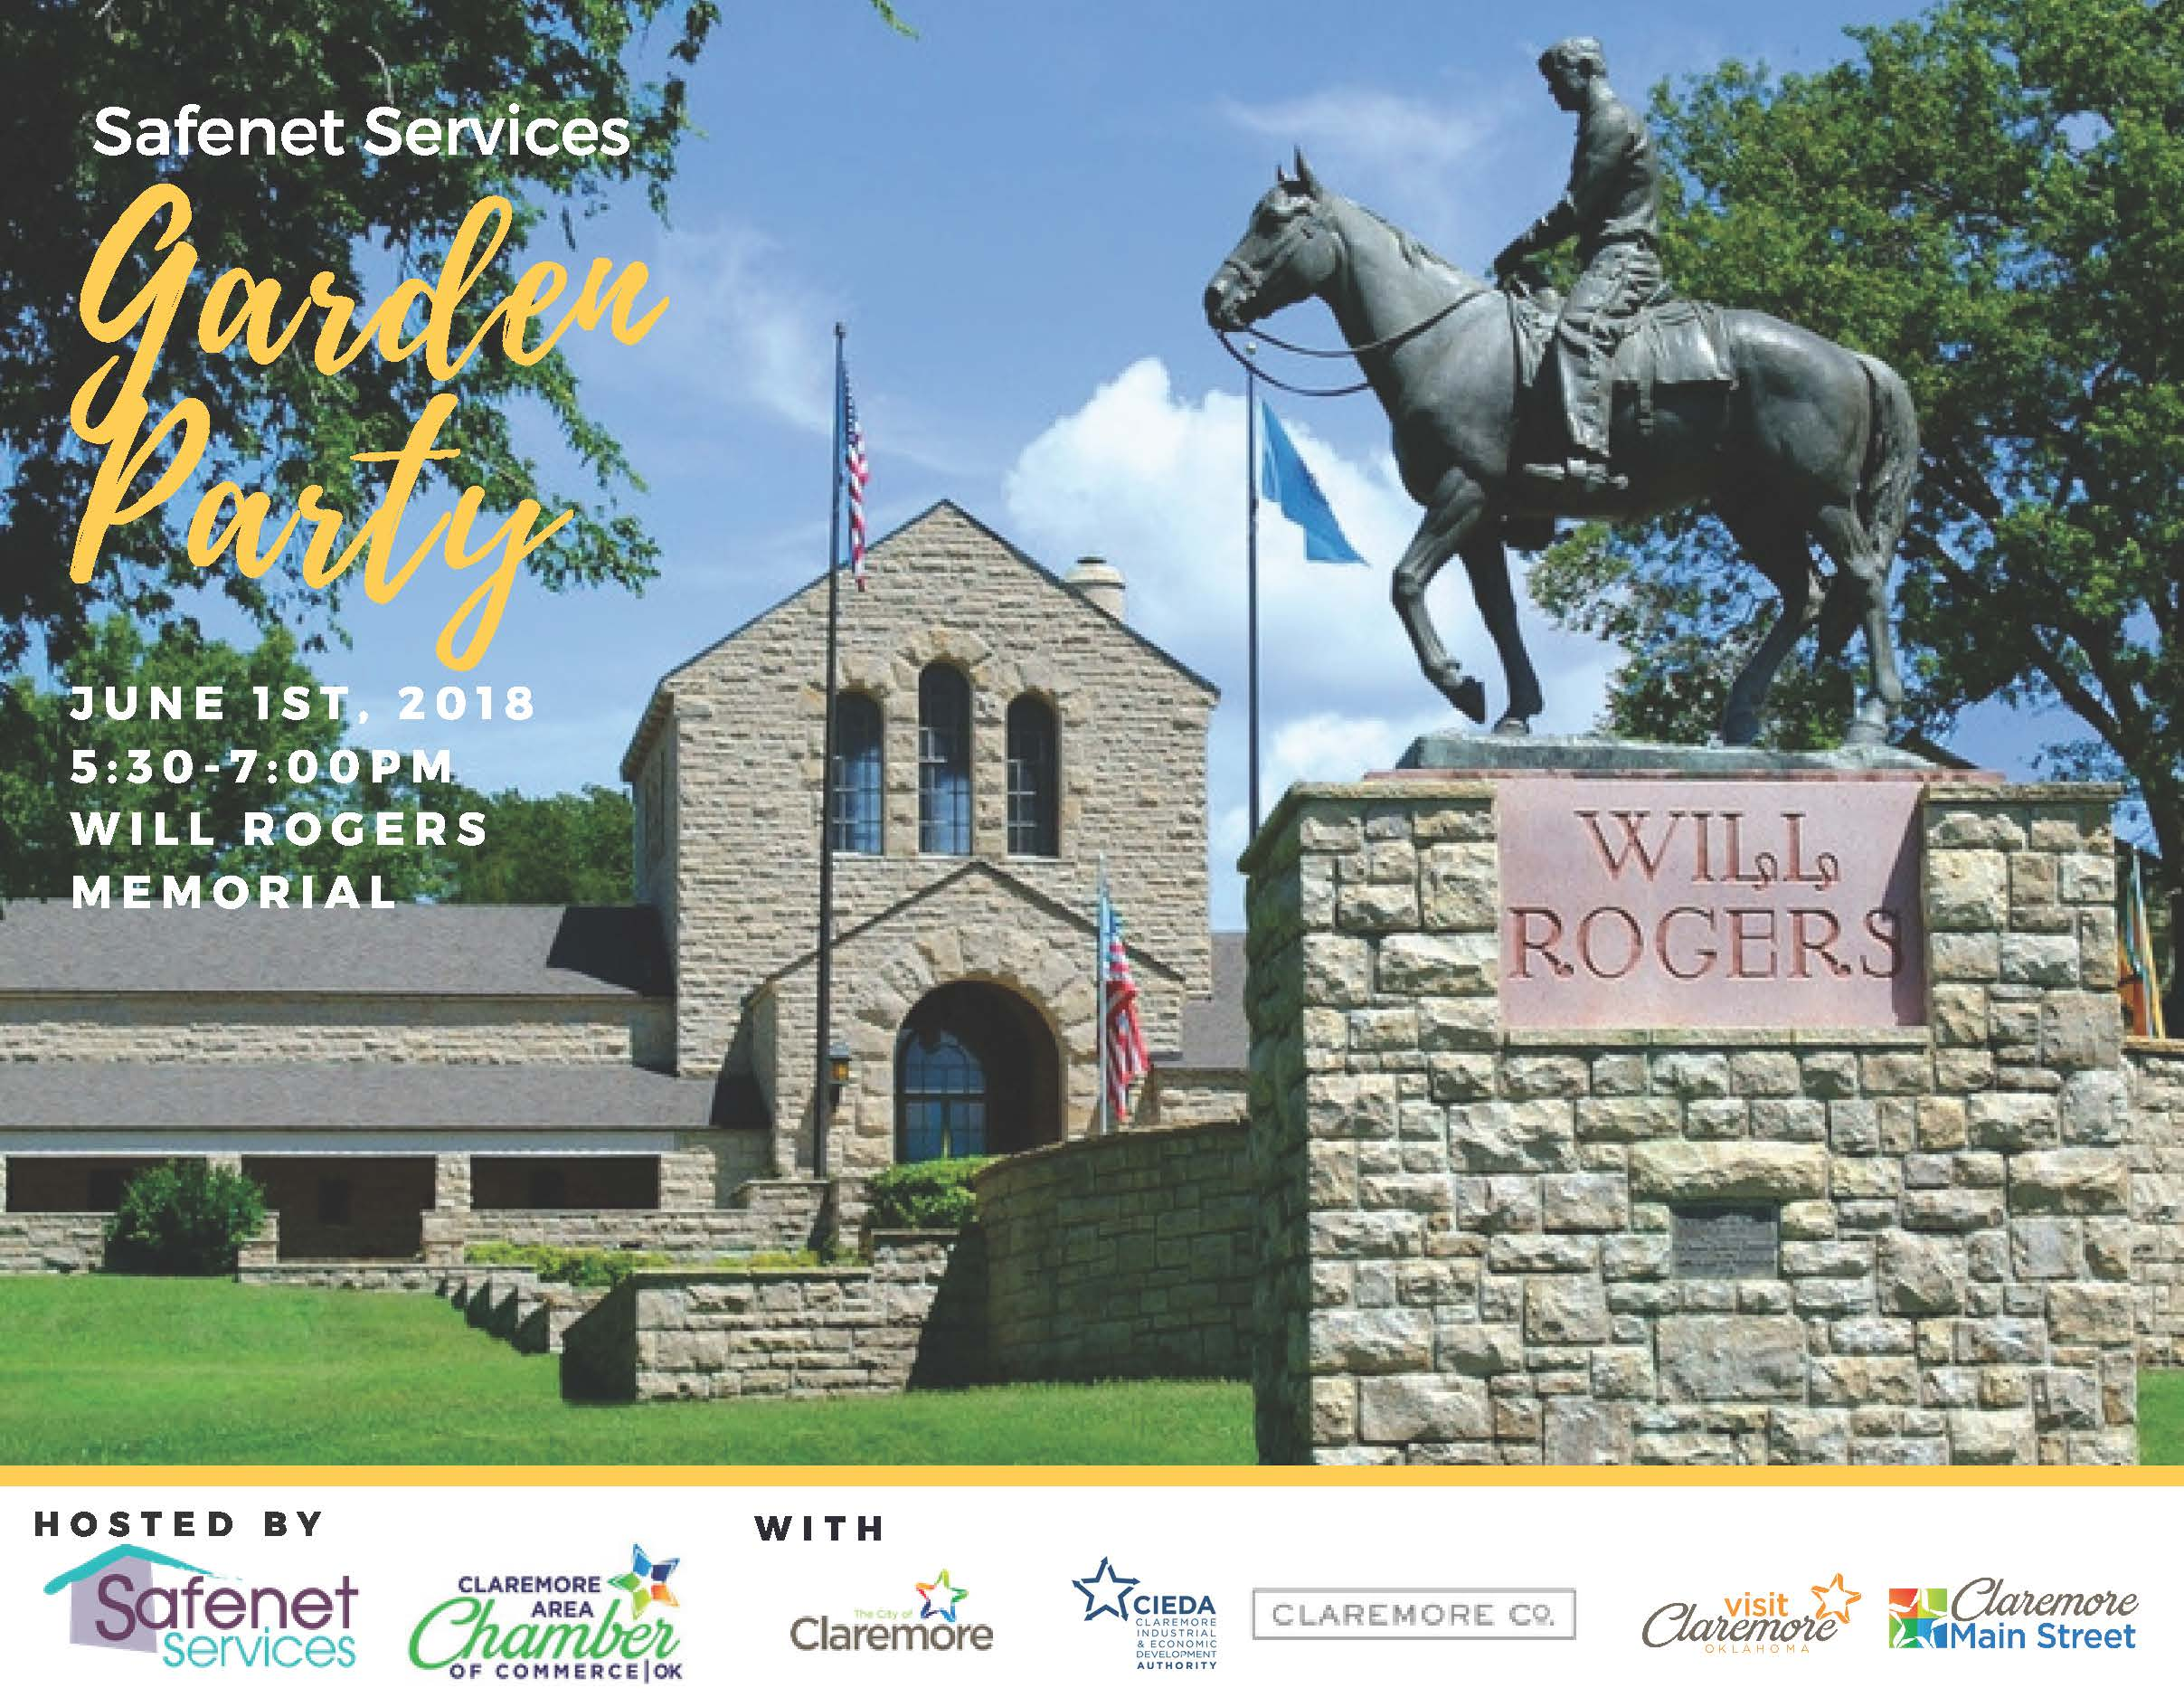 Garden Party, hosted by Claremore Area Chamber of Commerce